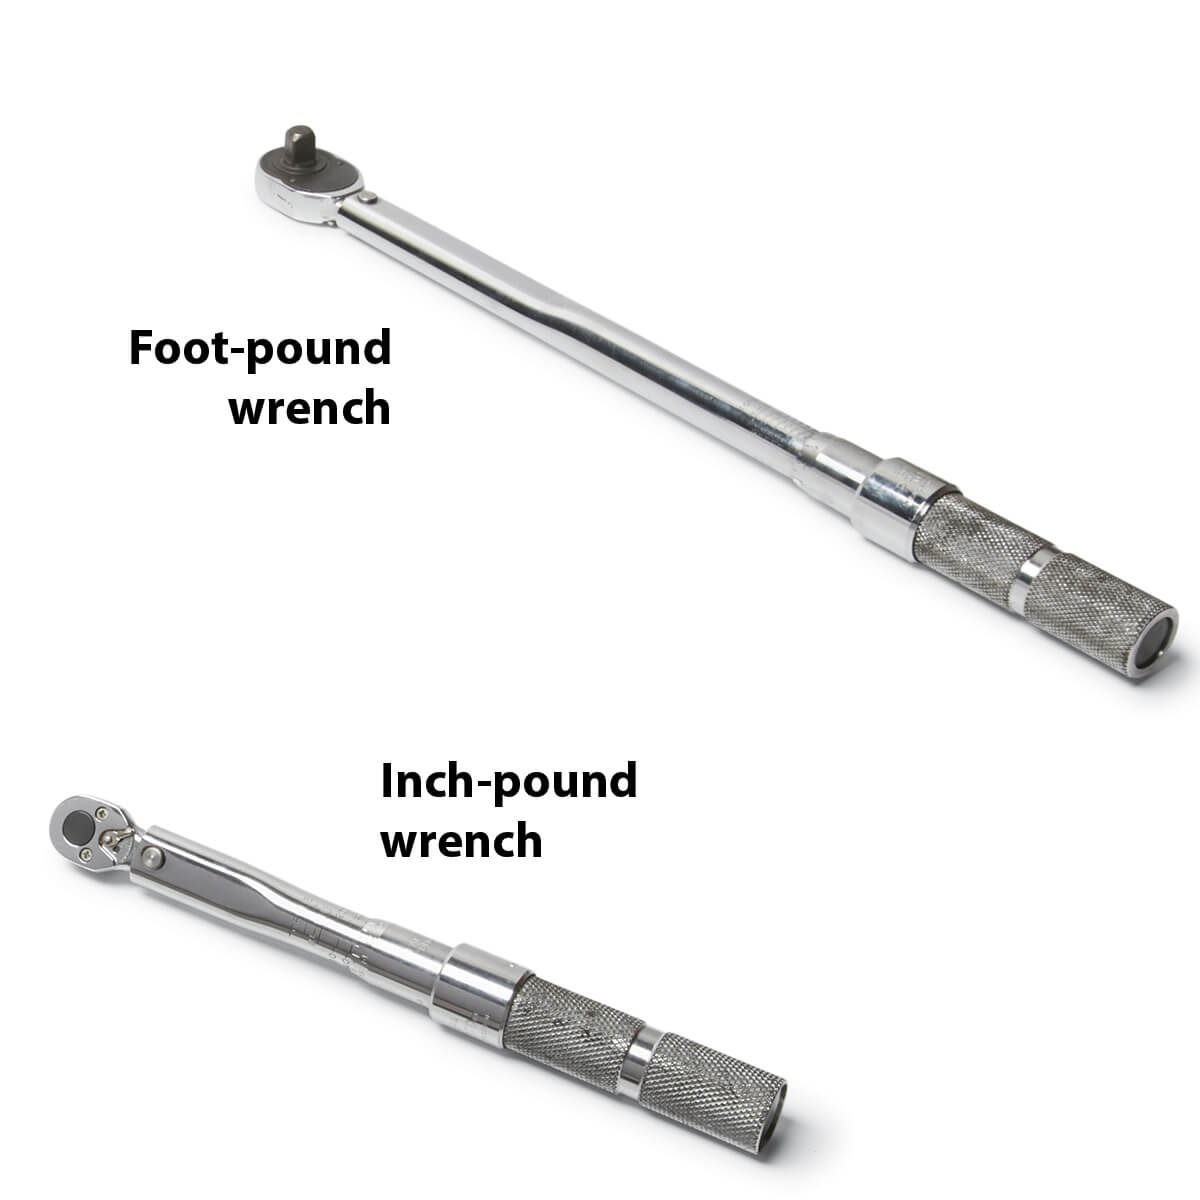 foot pound and inch pound wrenches